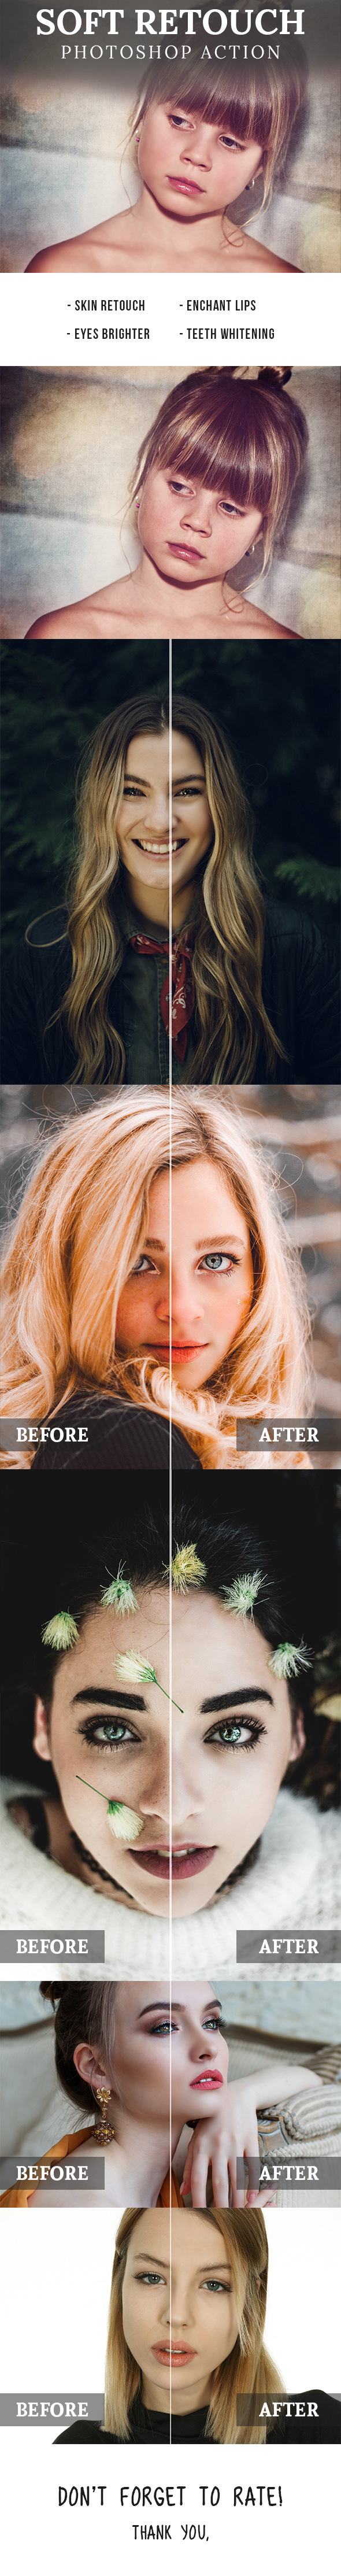 Soft Retouch Photoshop Action - Photo Effects Actions